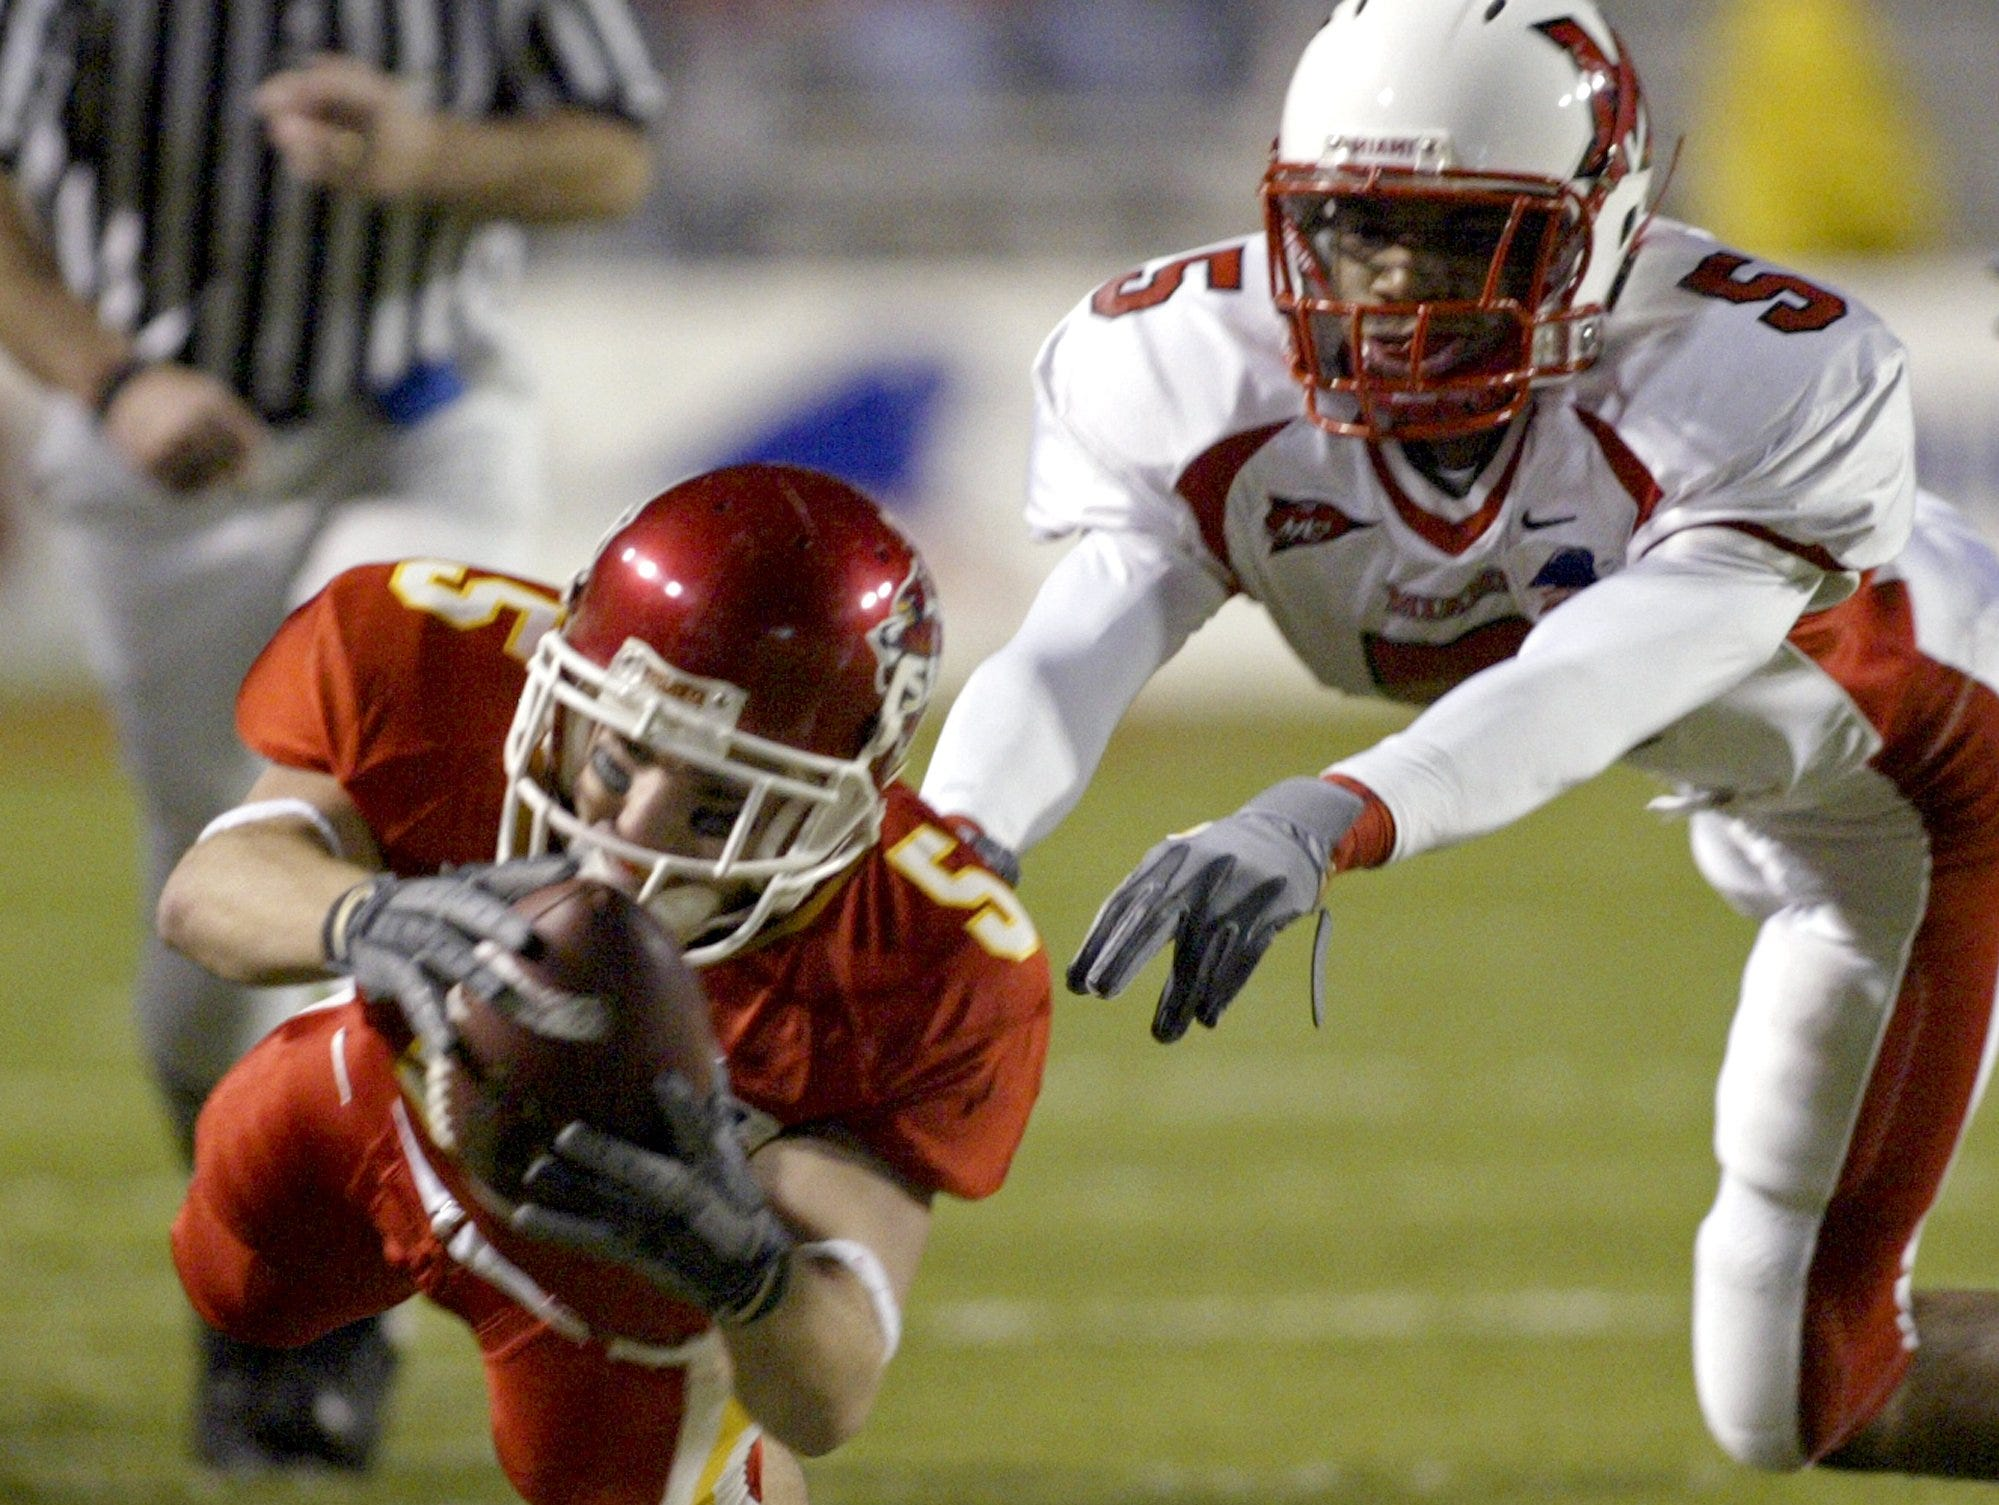 Iowa State's Todd Miller dives for extra yardage as Miami's Frank Wiwo defends during the 2004 Independence Bowl in Shreveport, La. Miller's 35-yard punt return, a career best, set up Stevie Hicks' 4-yard touchdown run in the first quarter.